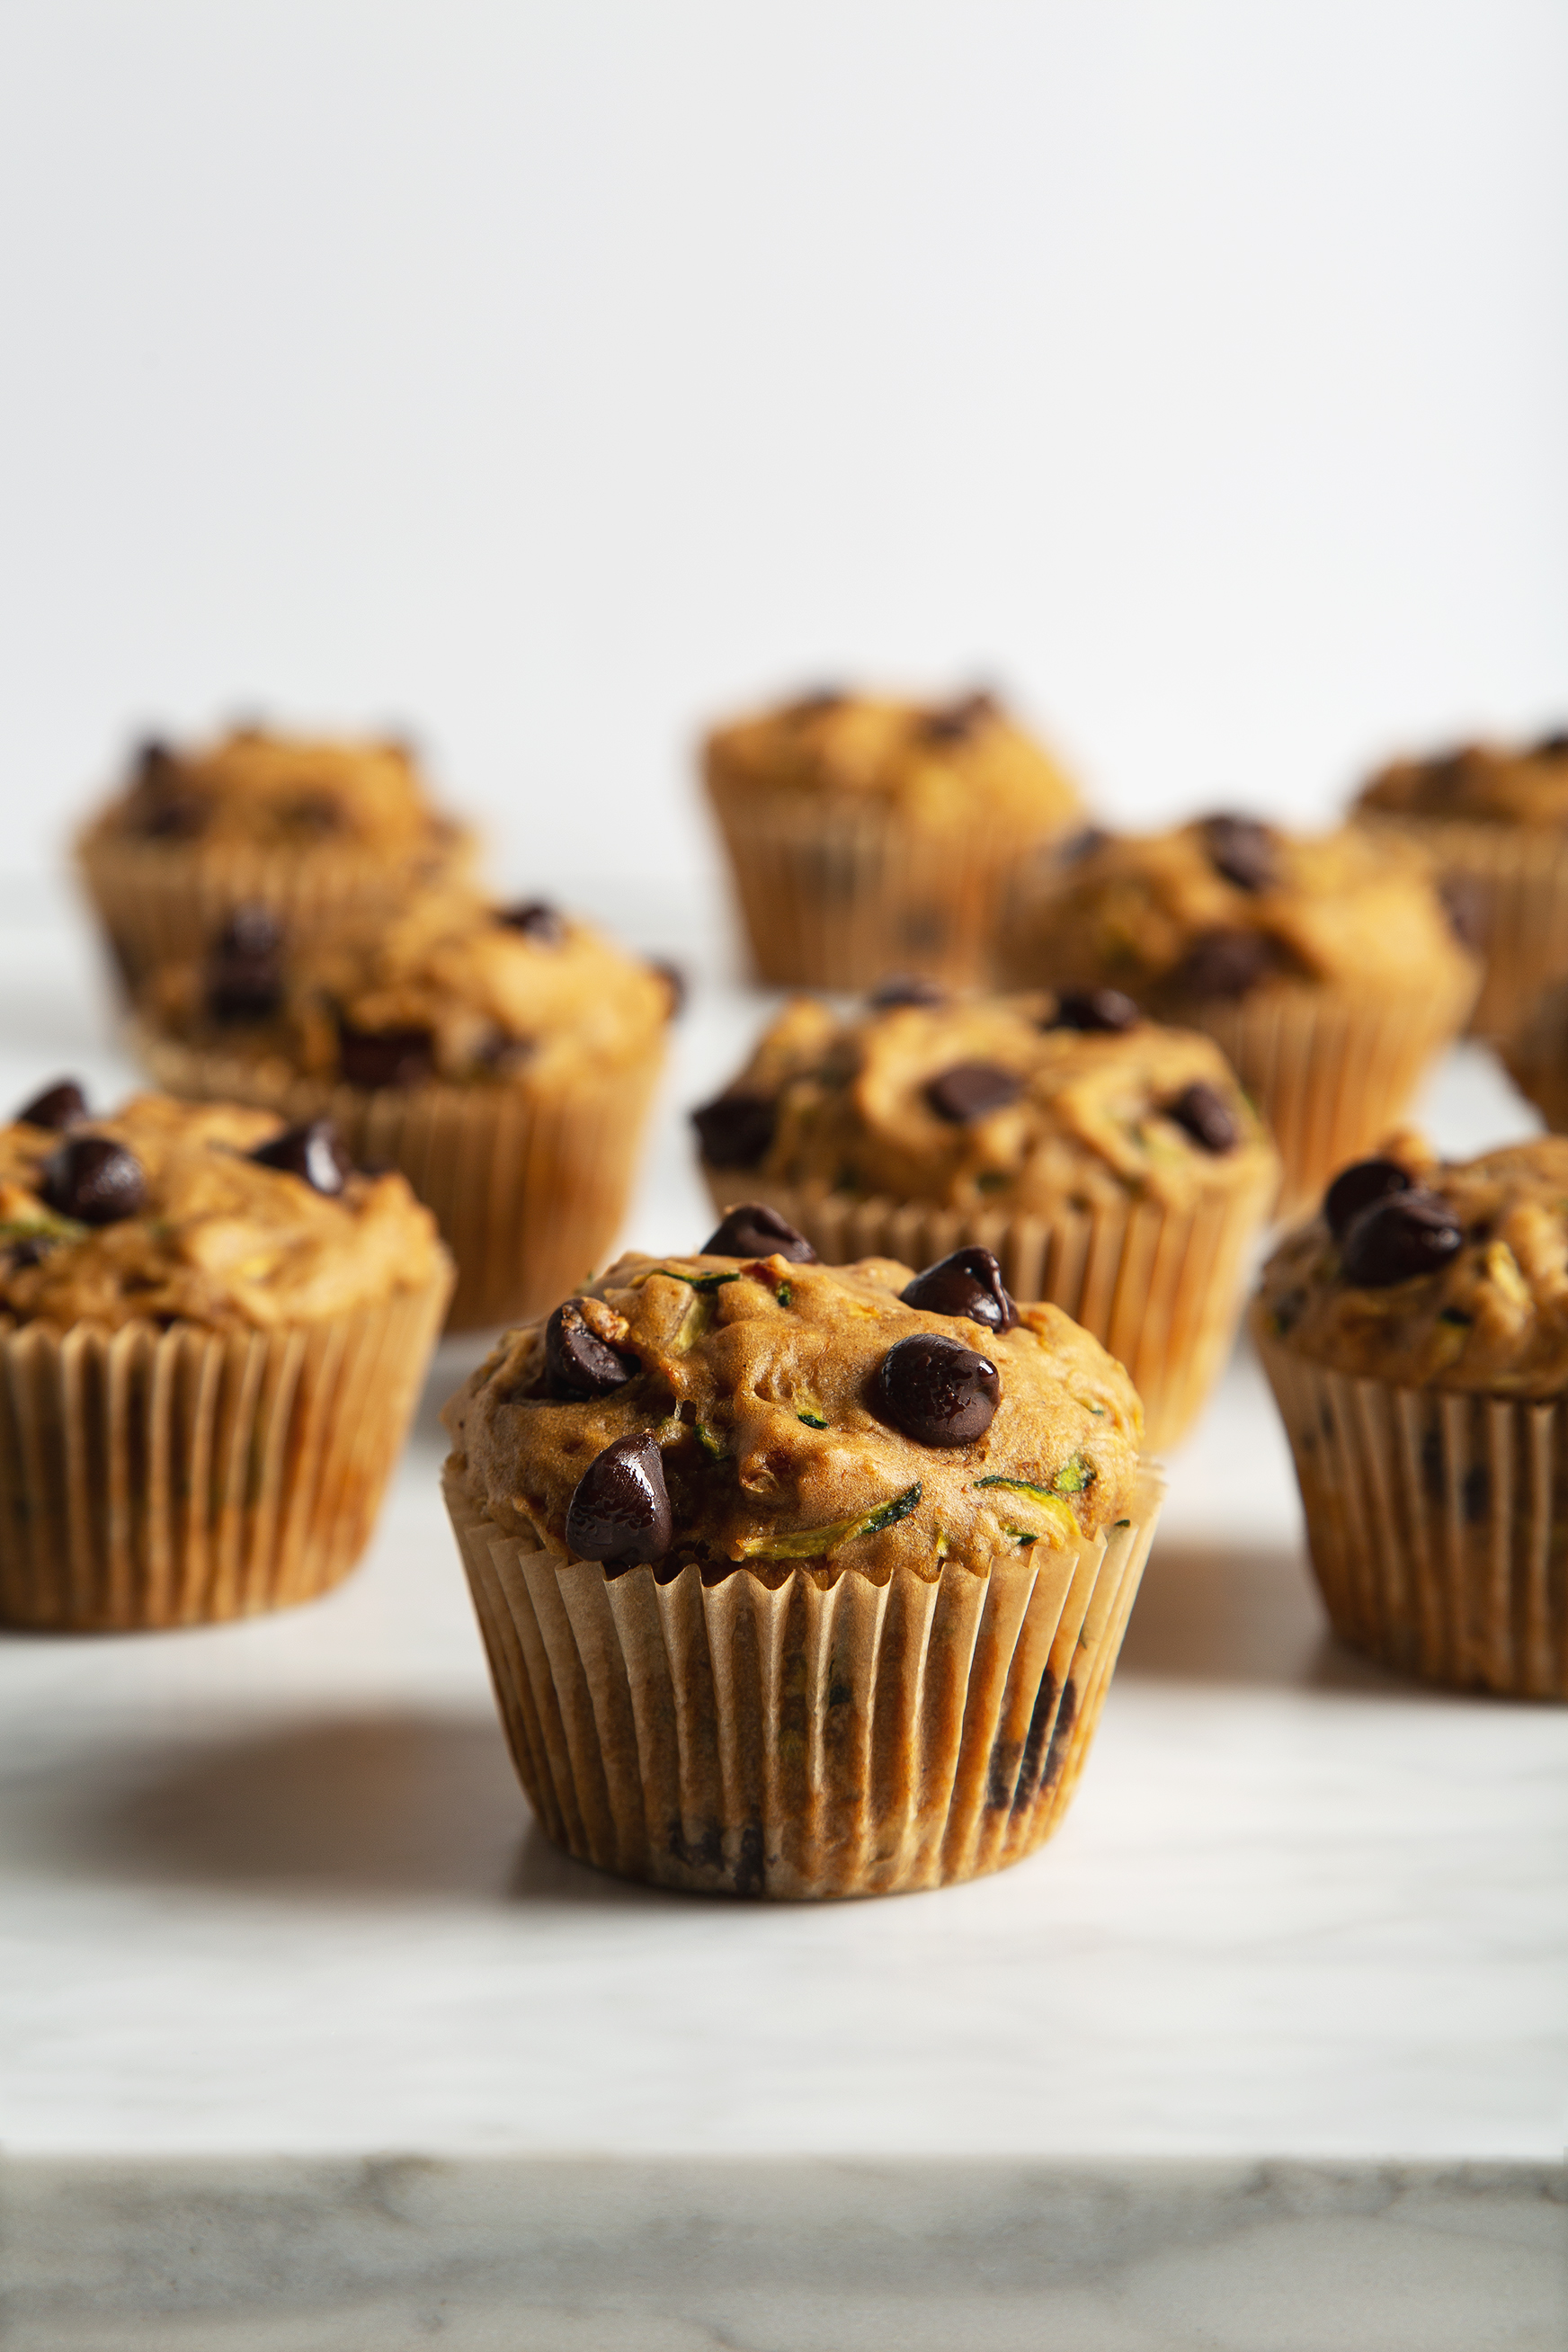 30-Minute Vegan Chocolate Chip Zucchini Muffins! | picklesnhoney.com #chocolatechip #zucchini #muffins #vegan #breakfast #snack #recipe #healthy